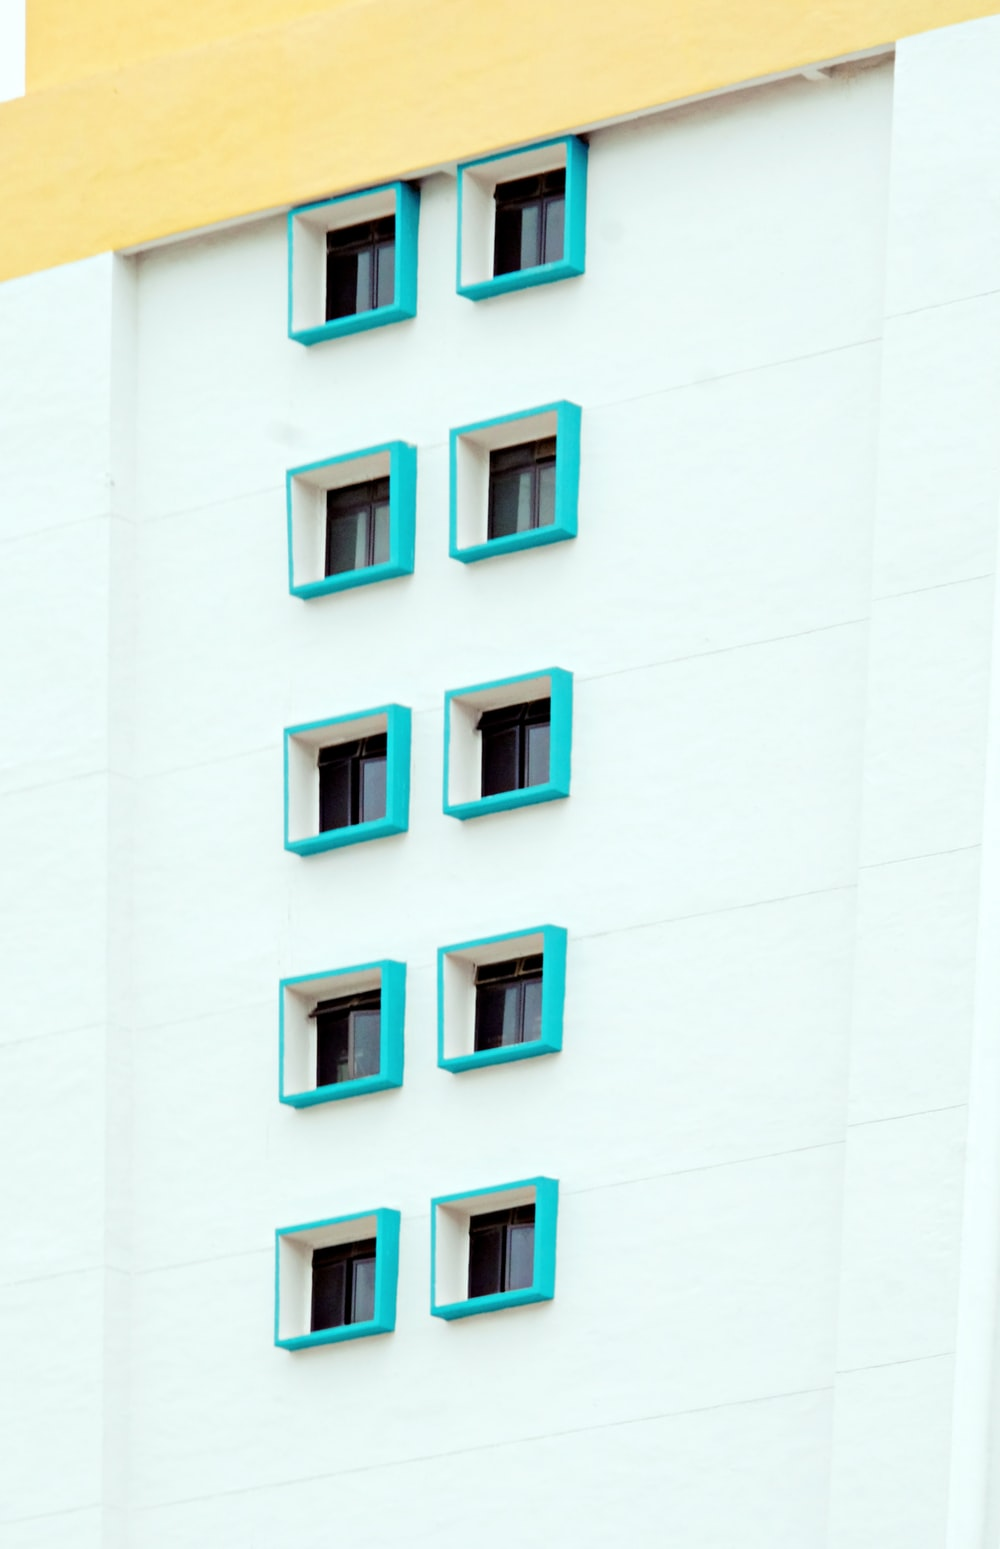 white concrete building with green windows